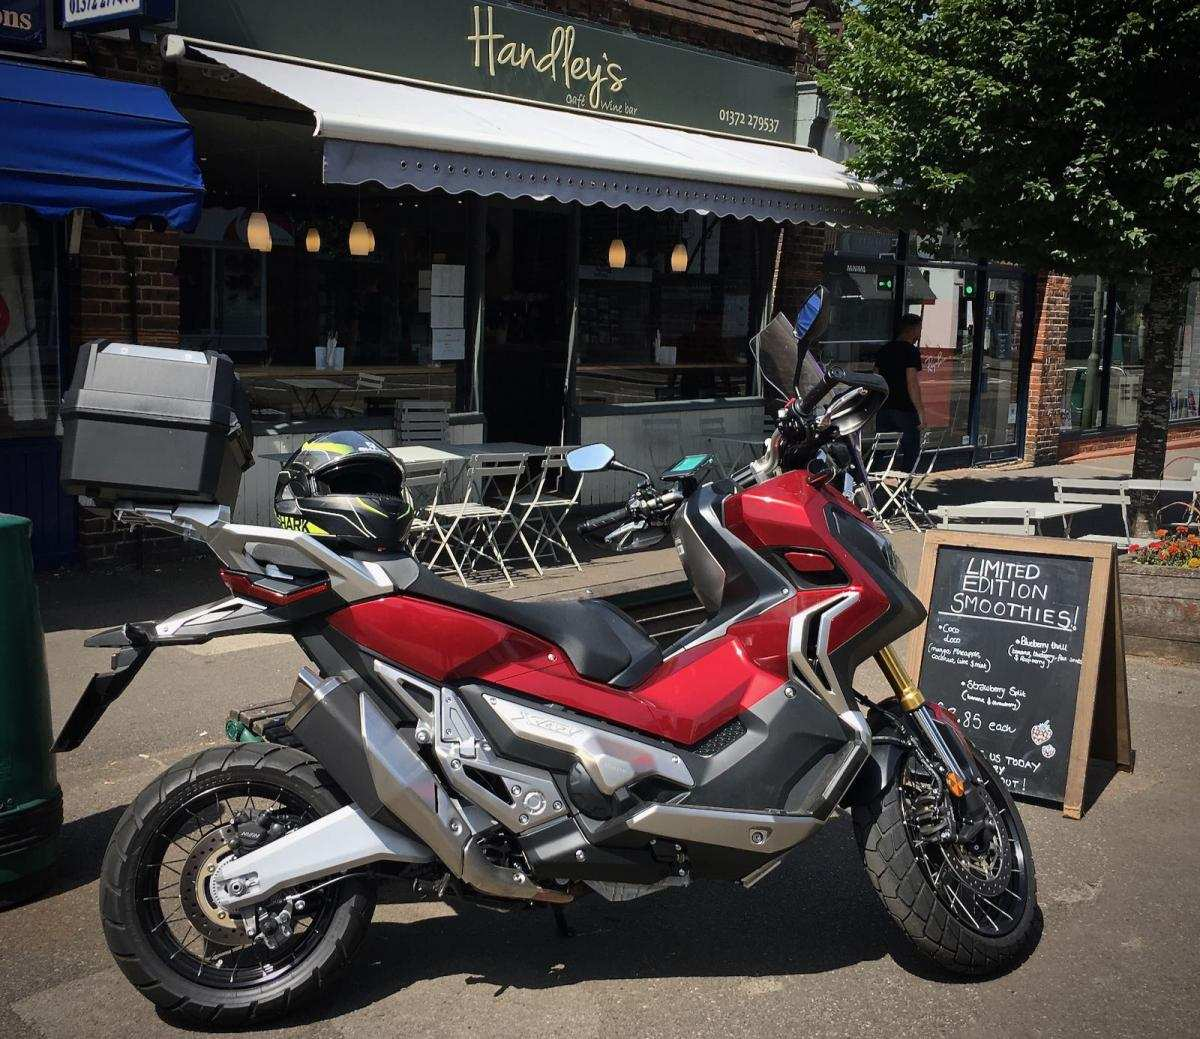 46 All New Honda X Adv 2020 Price Design And Review